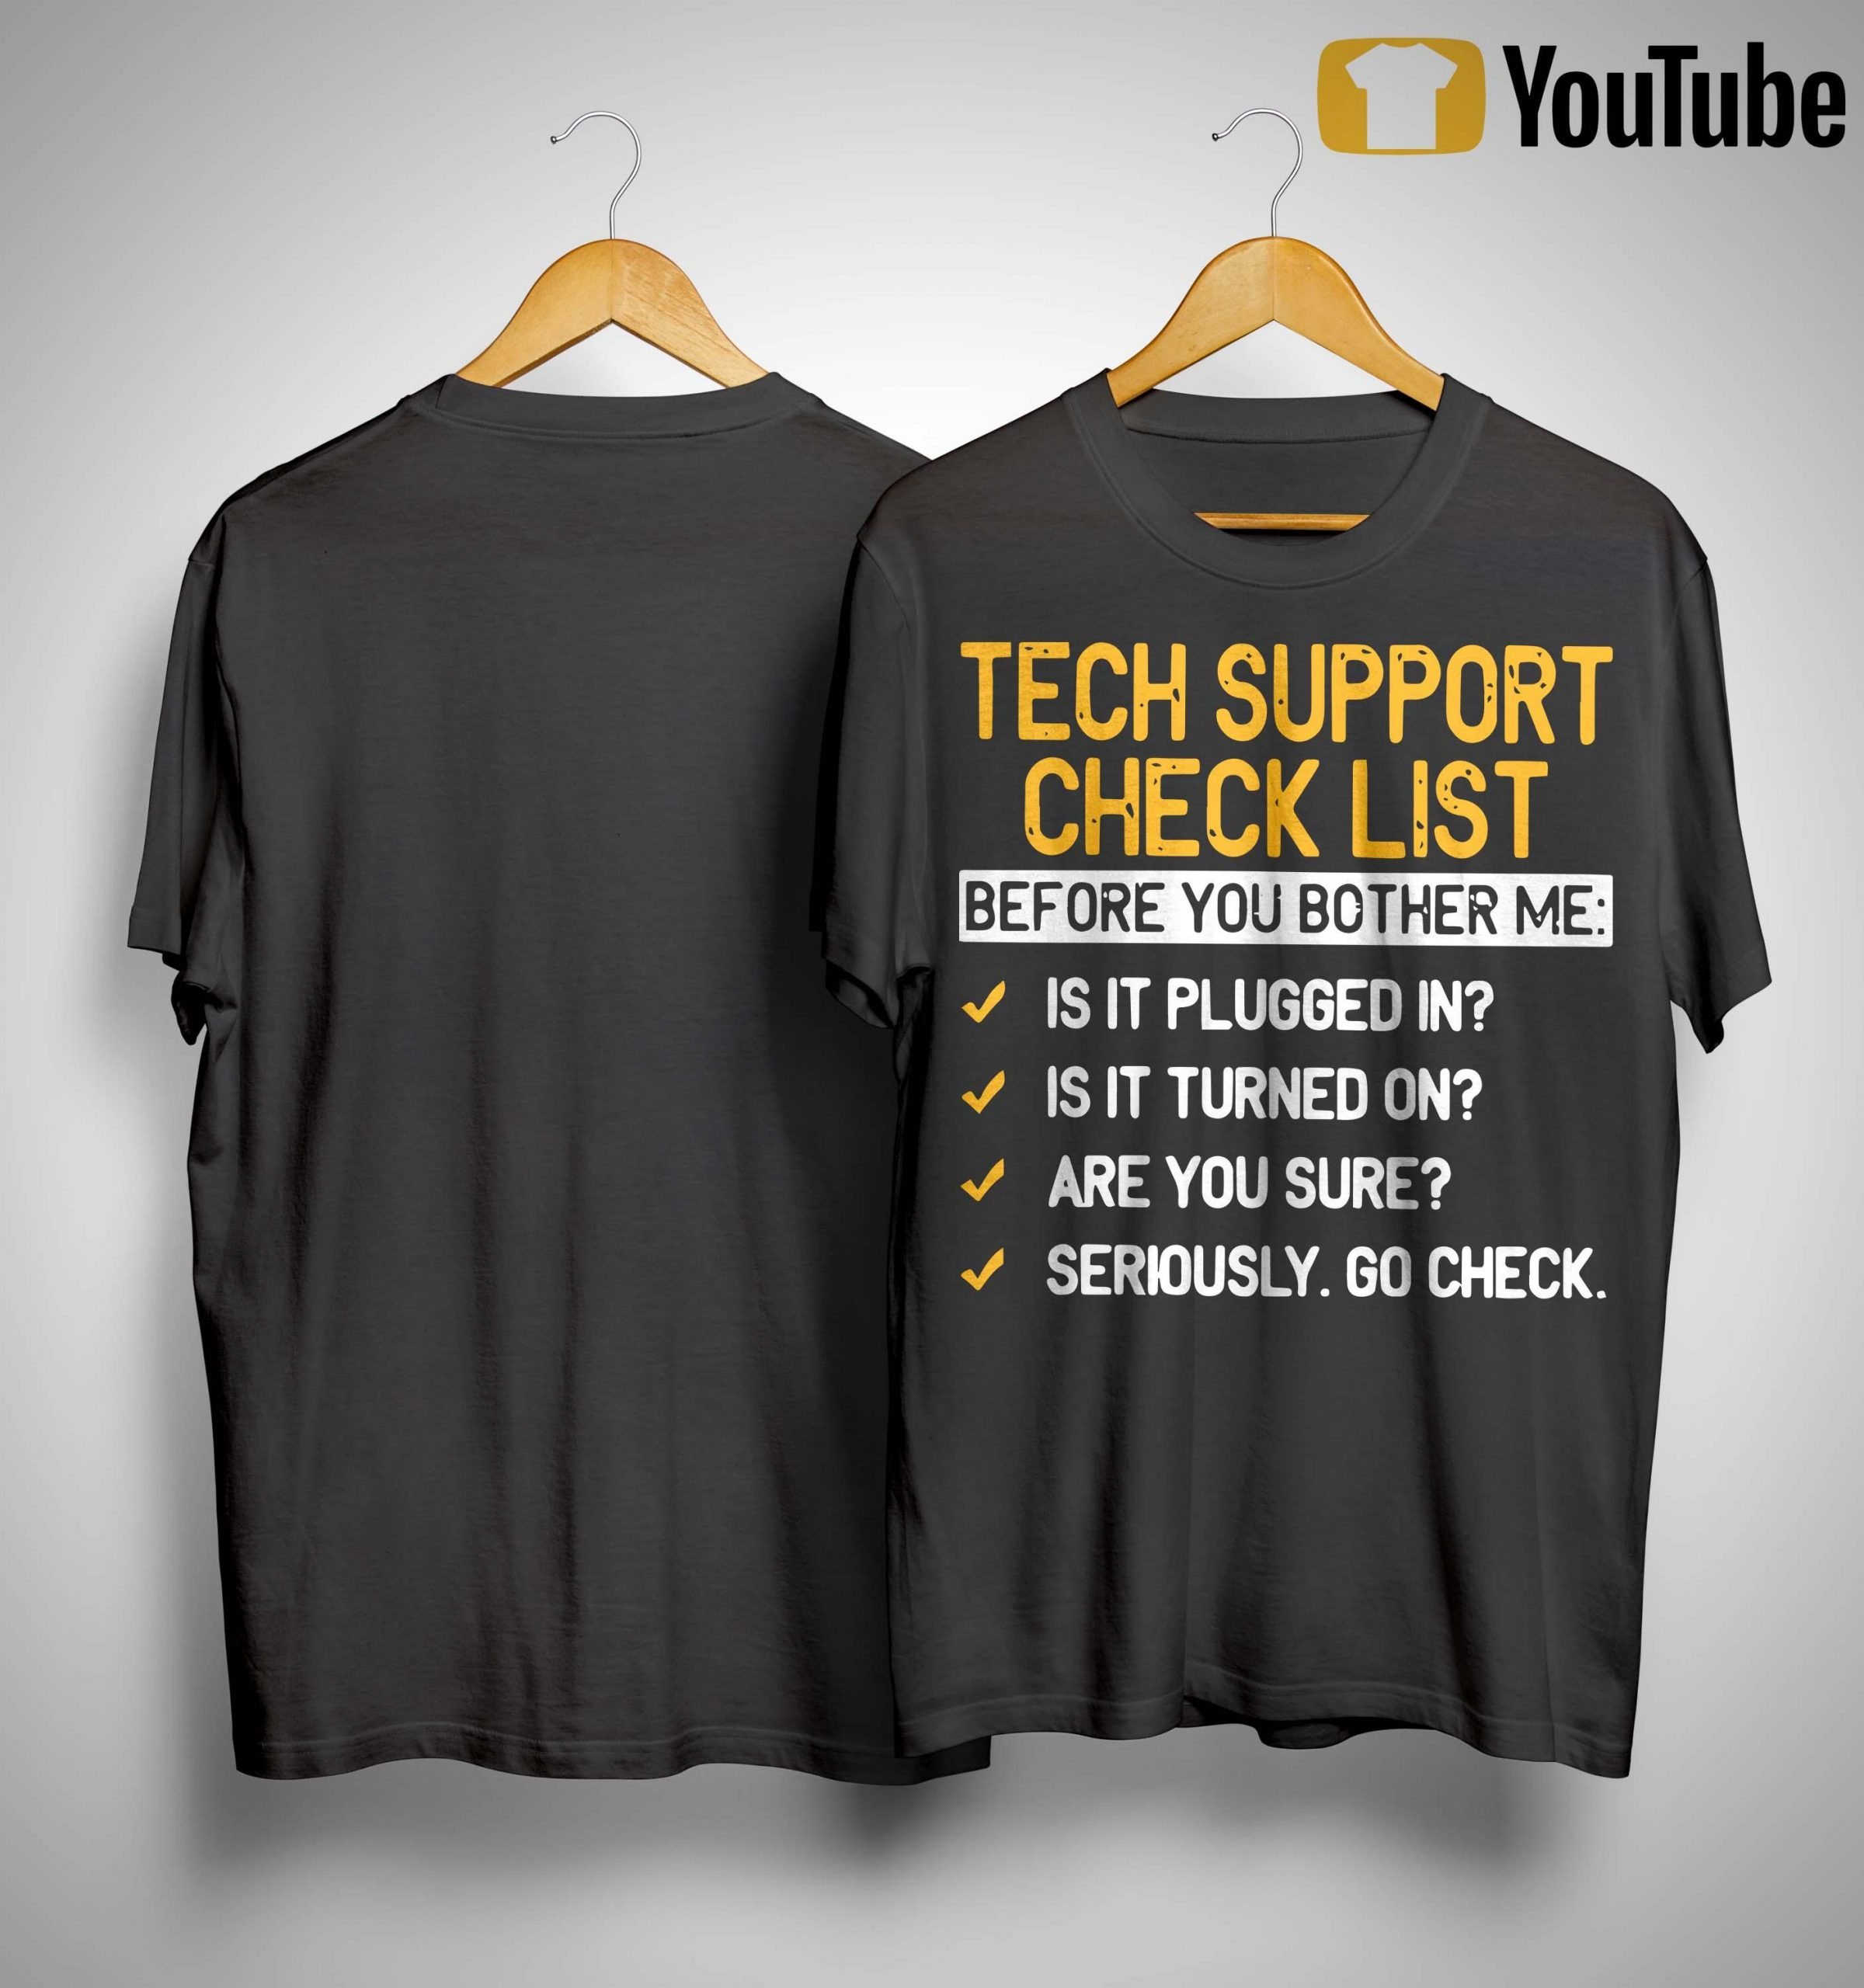 Tech Support Check List Before You Bother Me Shirt